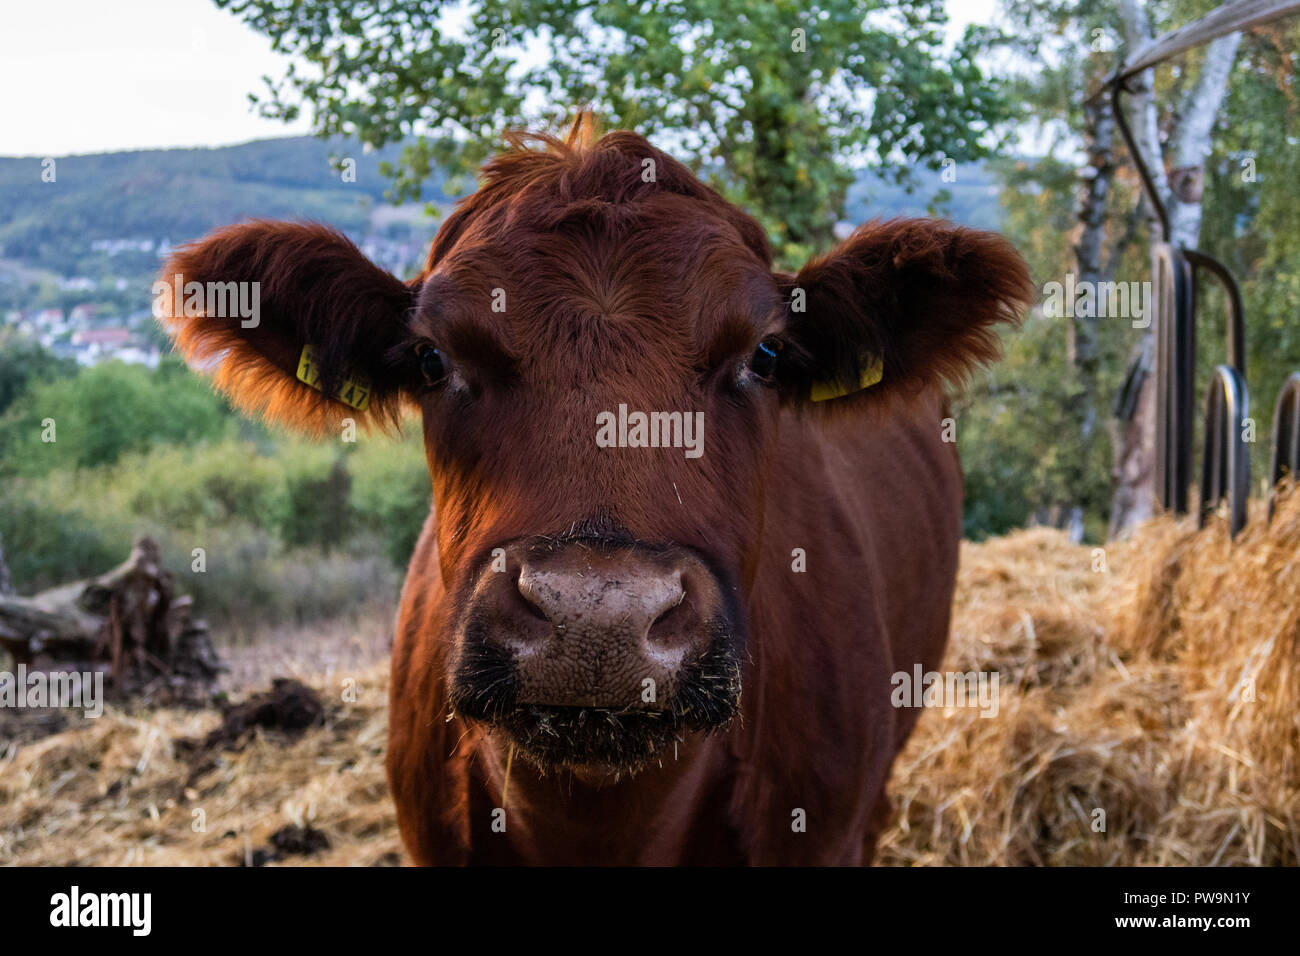 Brown cow Portrait in the Morning hour - Stock Image